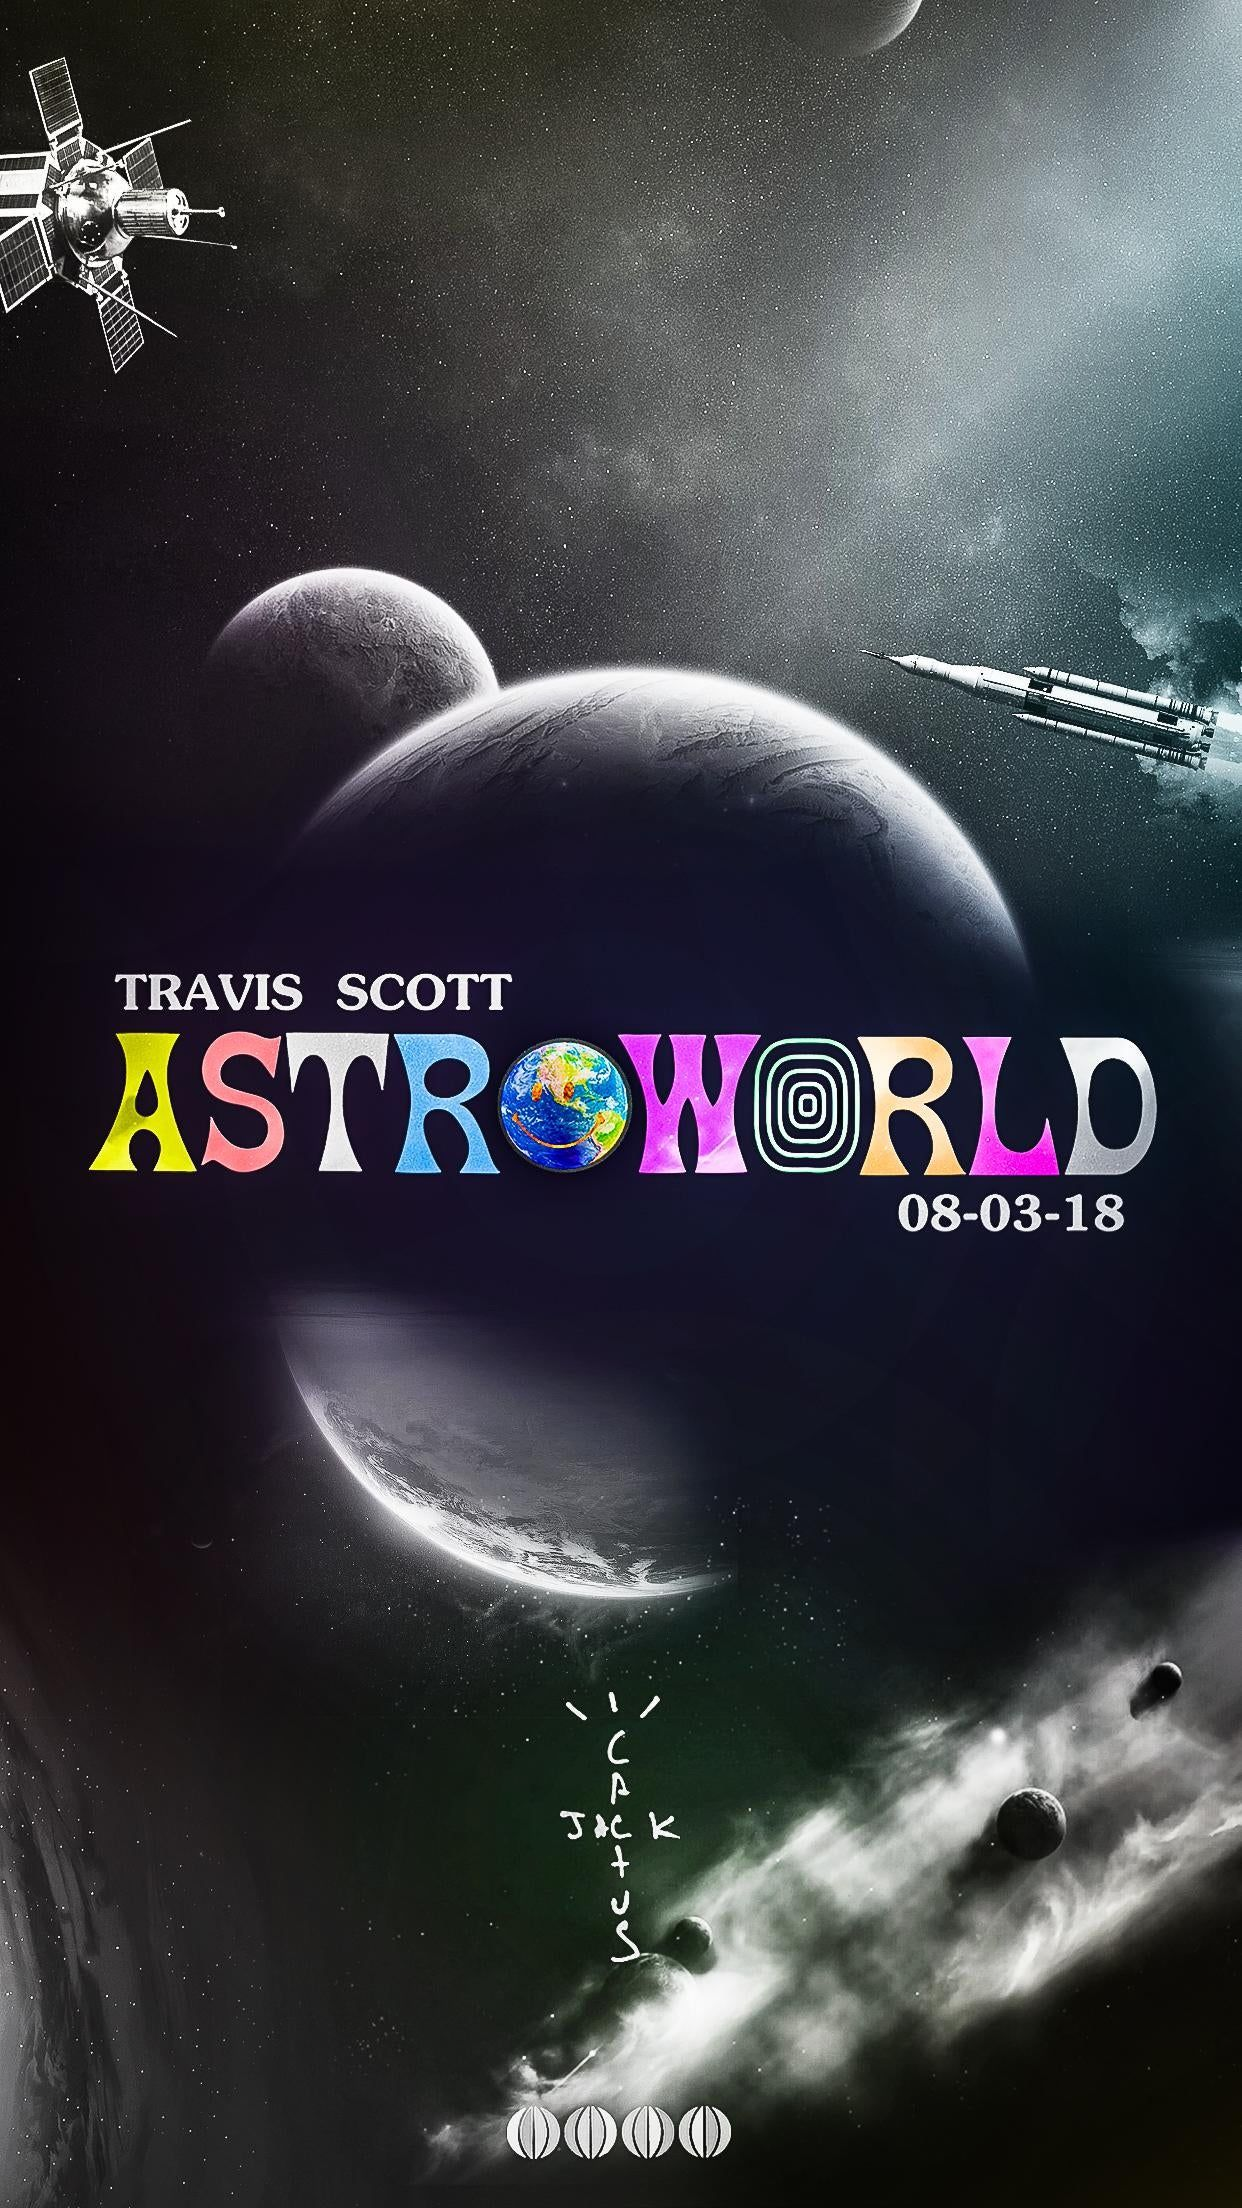 Astroworld Wallpaper 2 In 2020 Travis Scott Iphone Wallpaper Travis Scott Wallpapers Chill Wallpaper